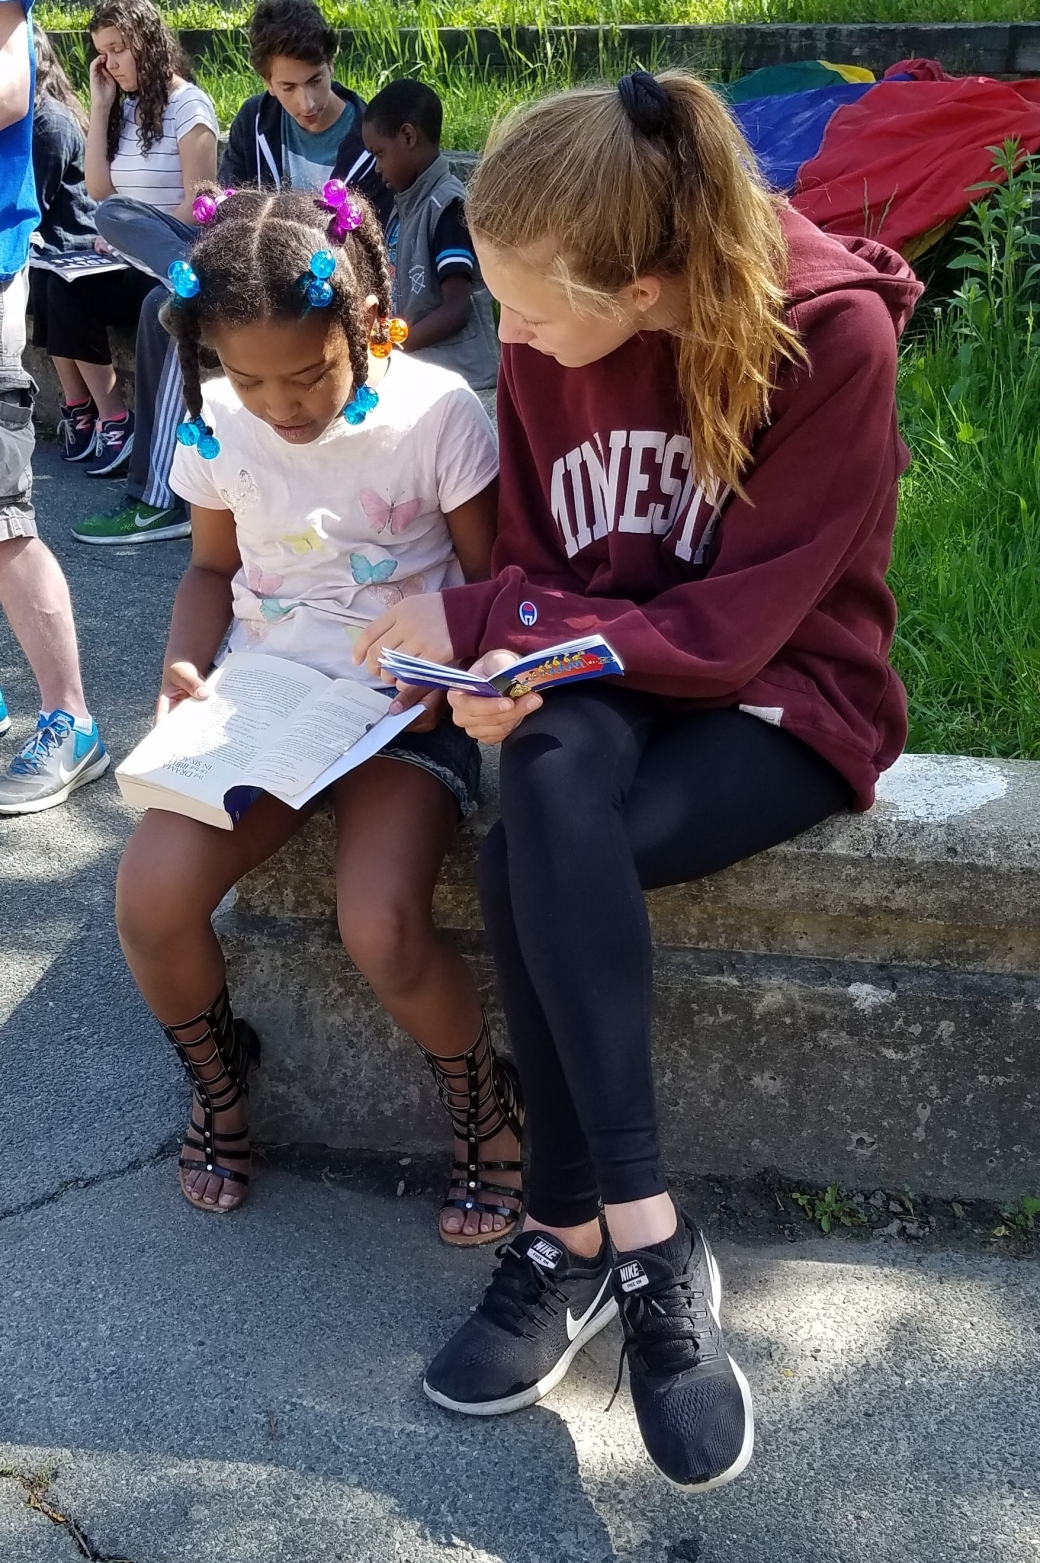 This girl wanted a Bible, so we gave her one, and she was so happy to open it up! Please pray that she reads it everyday like we suggested she should!